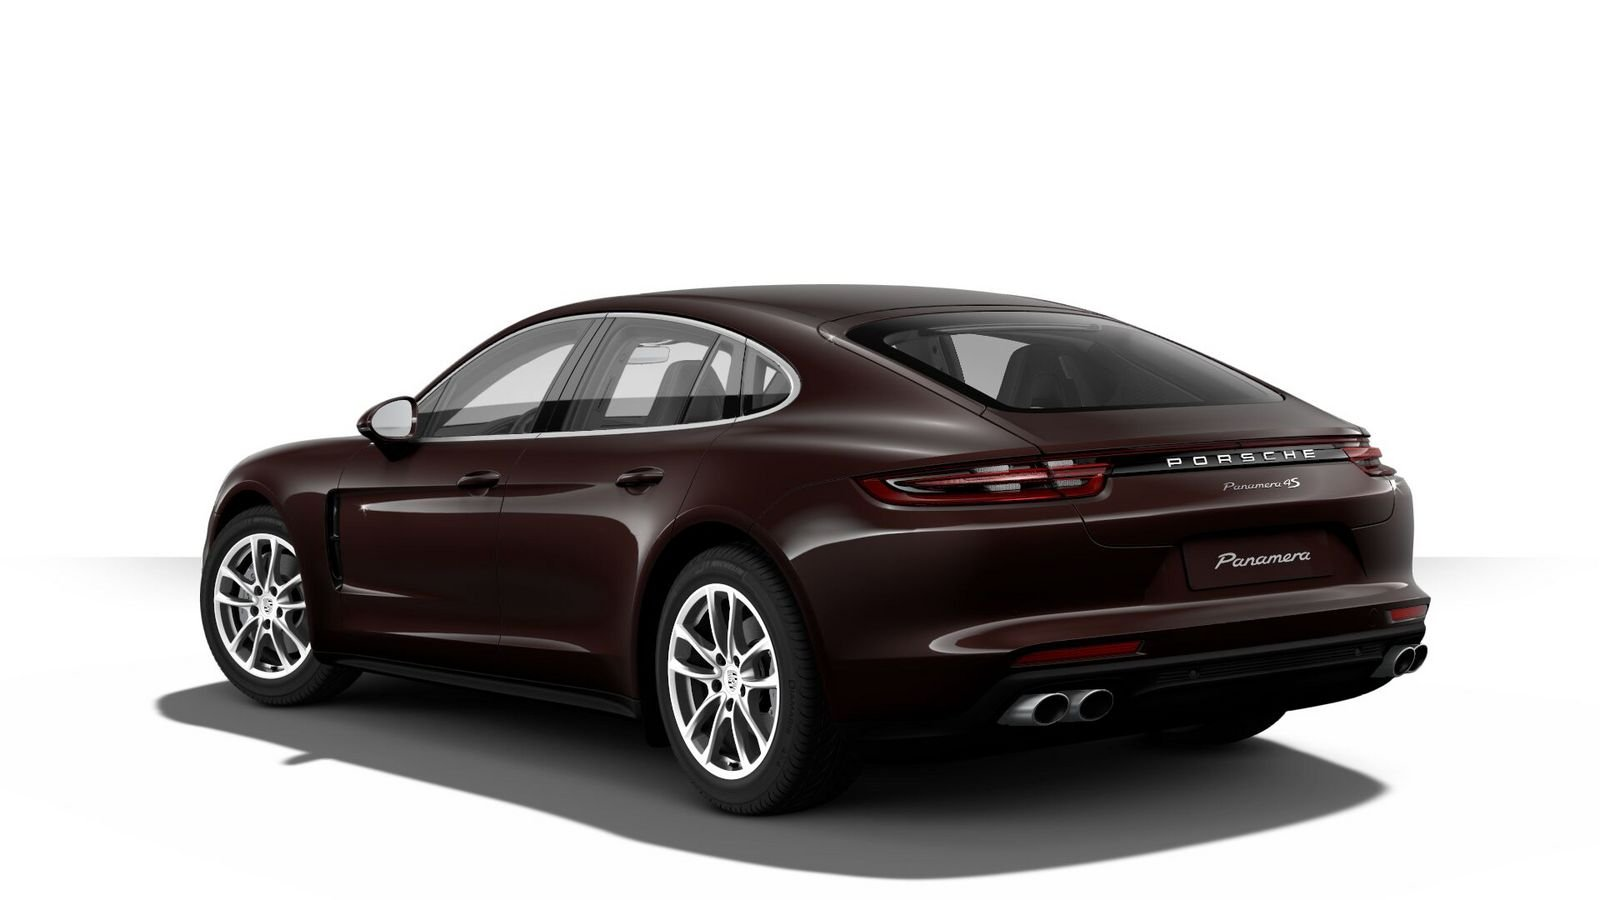 2018 porsche panamera picture 681540 car review top speed. Black Bedroom Furniture Sets. Home Design Ideas